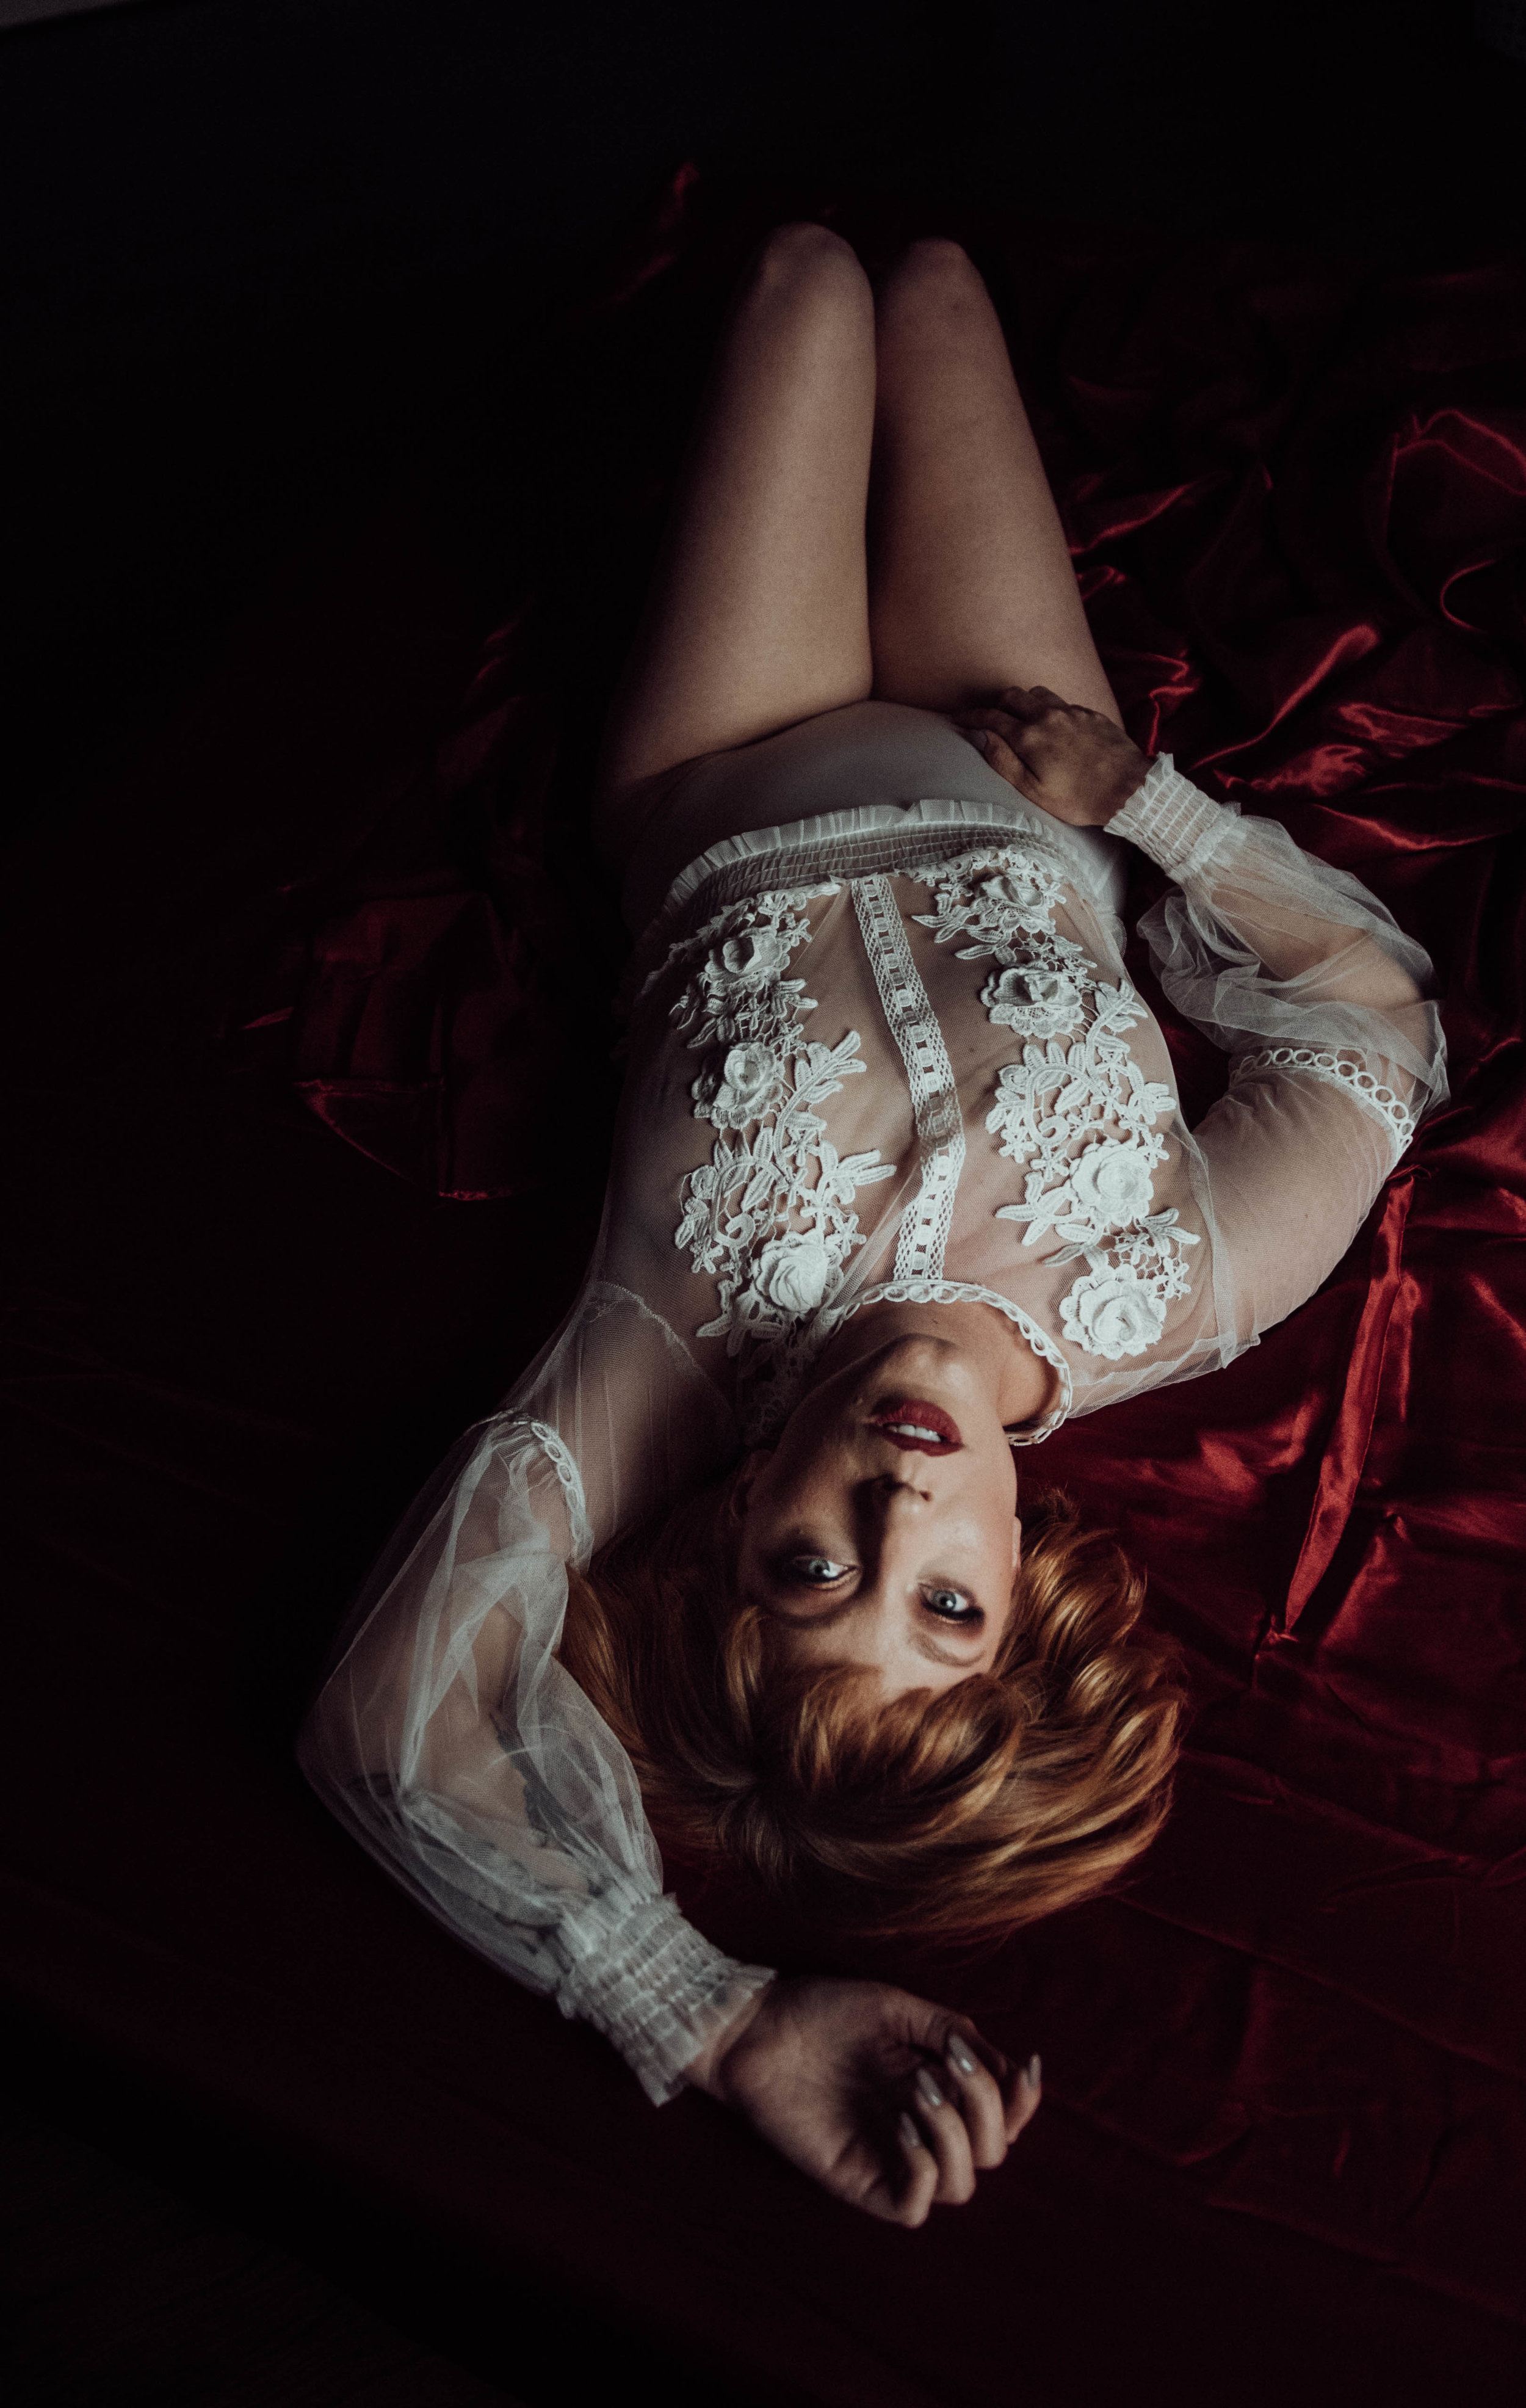 Redhead with blue eyes laying on red sheets in white lace bodysuit boudoir photography new york city studio